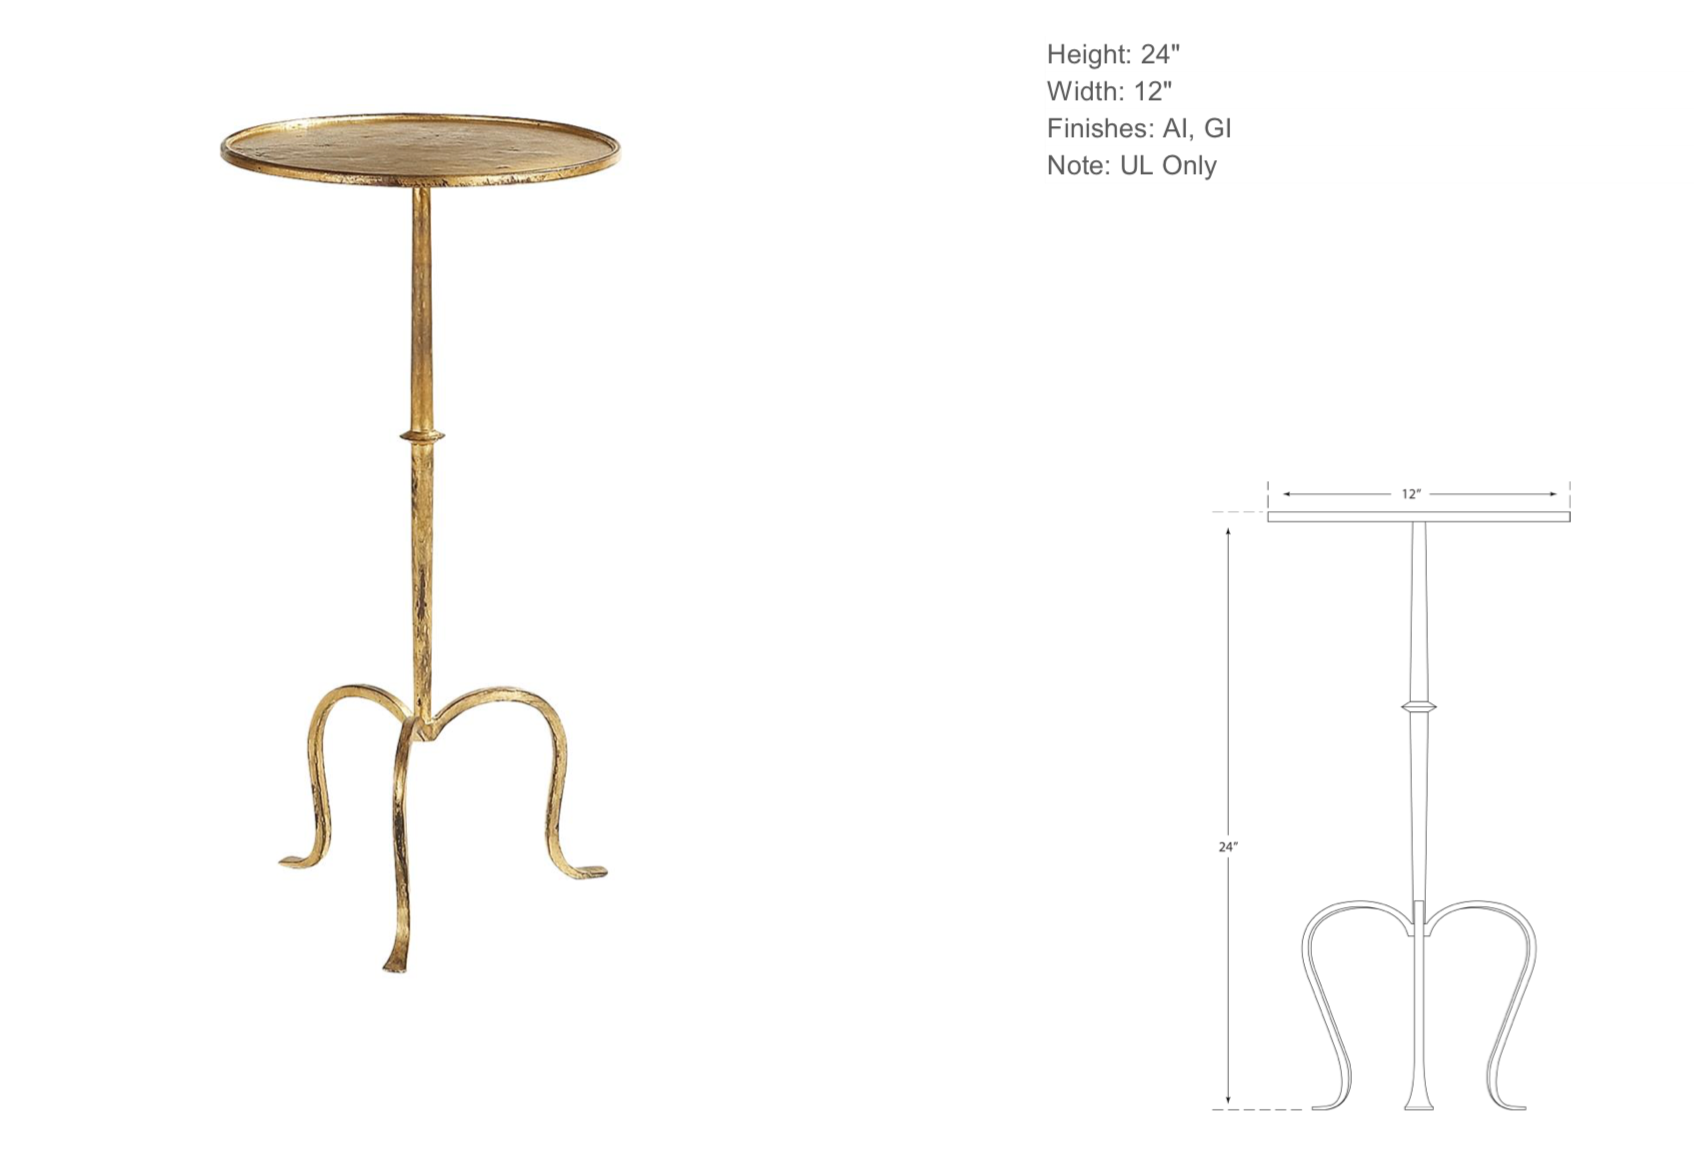 Gilded Iron Side Table